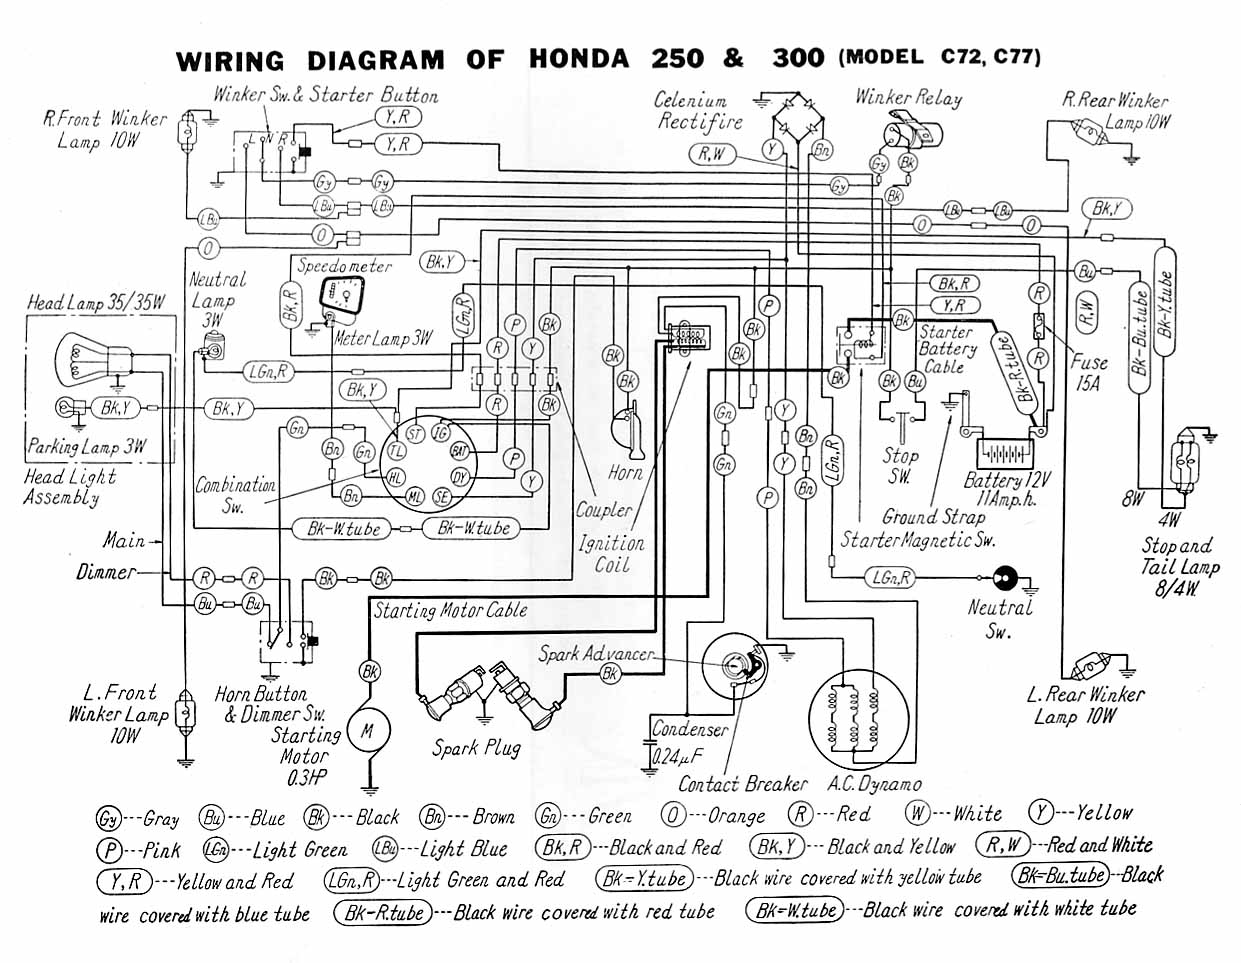 1973 Honda Ct90 Wiring Diagram | Wiring Library